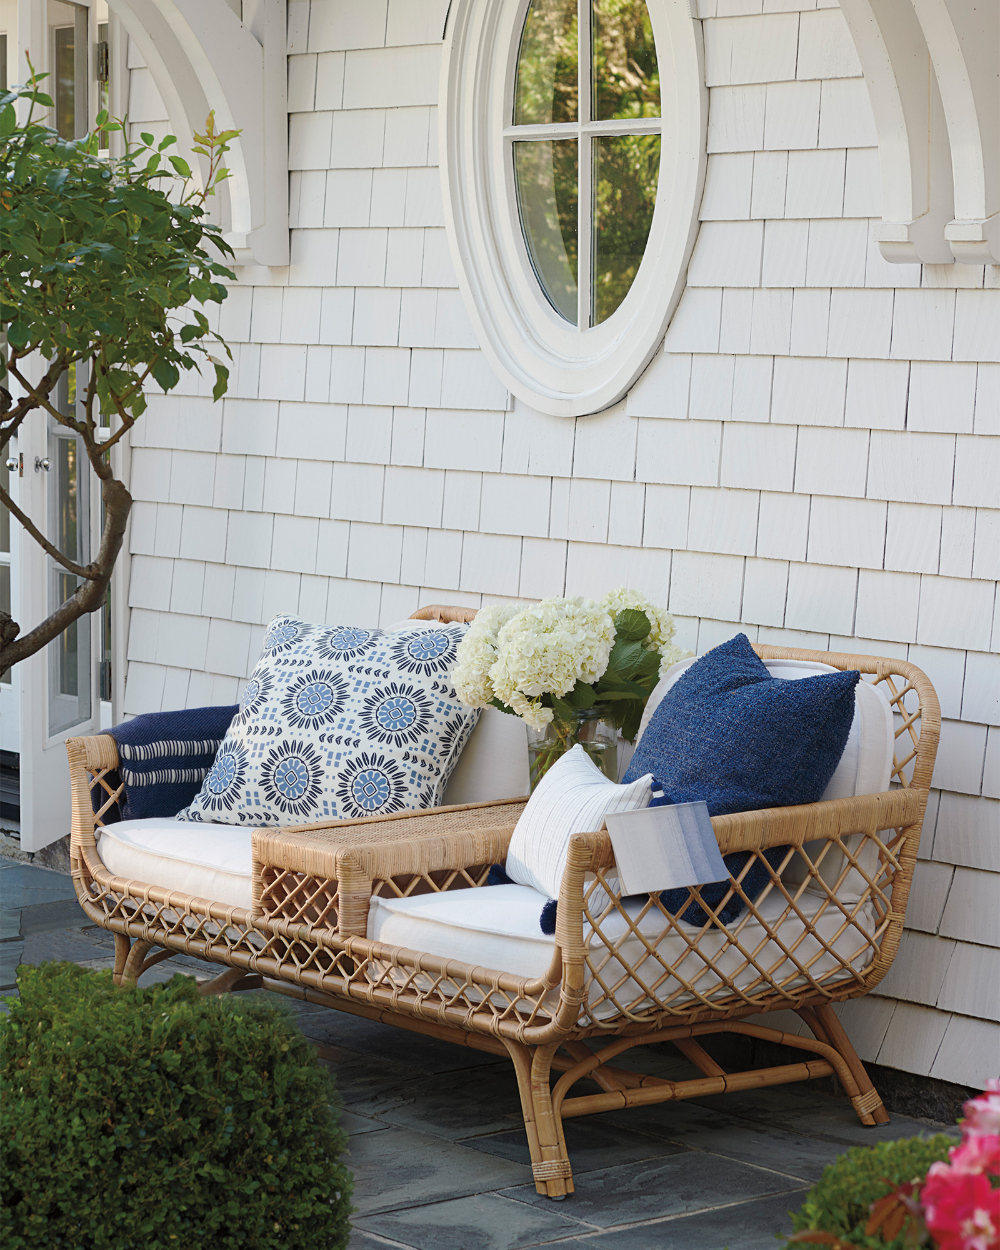 Pin On Cane Furniture With Wicker Tete A Tete Benches (View 24 of 25)